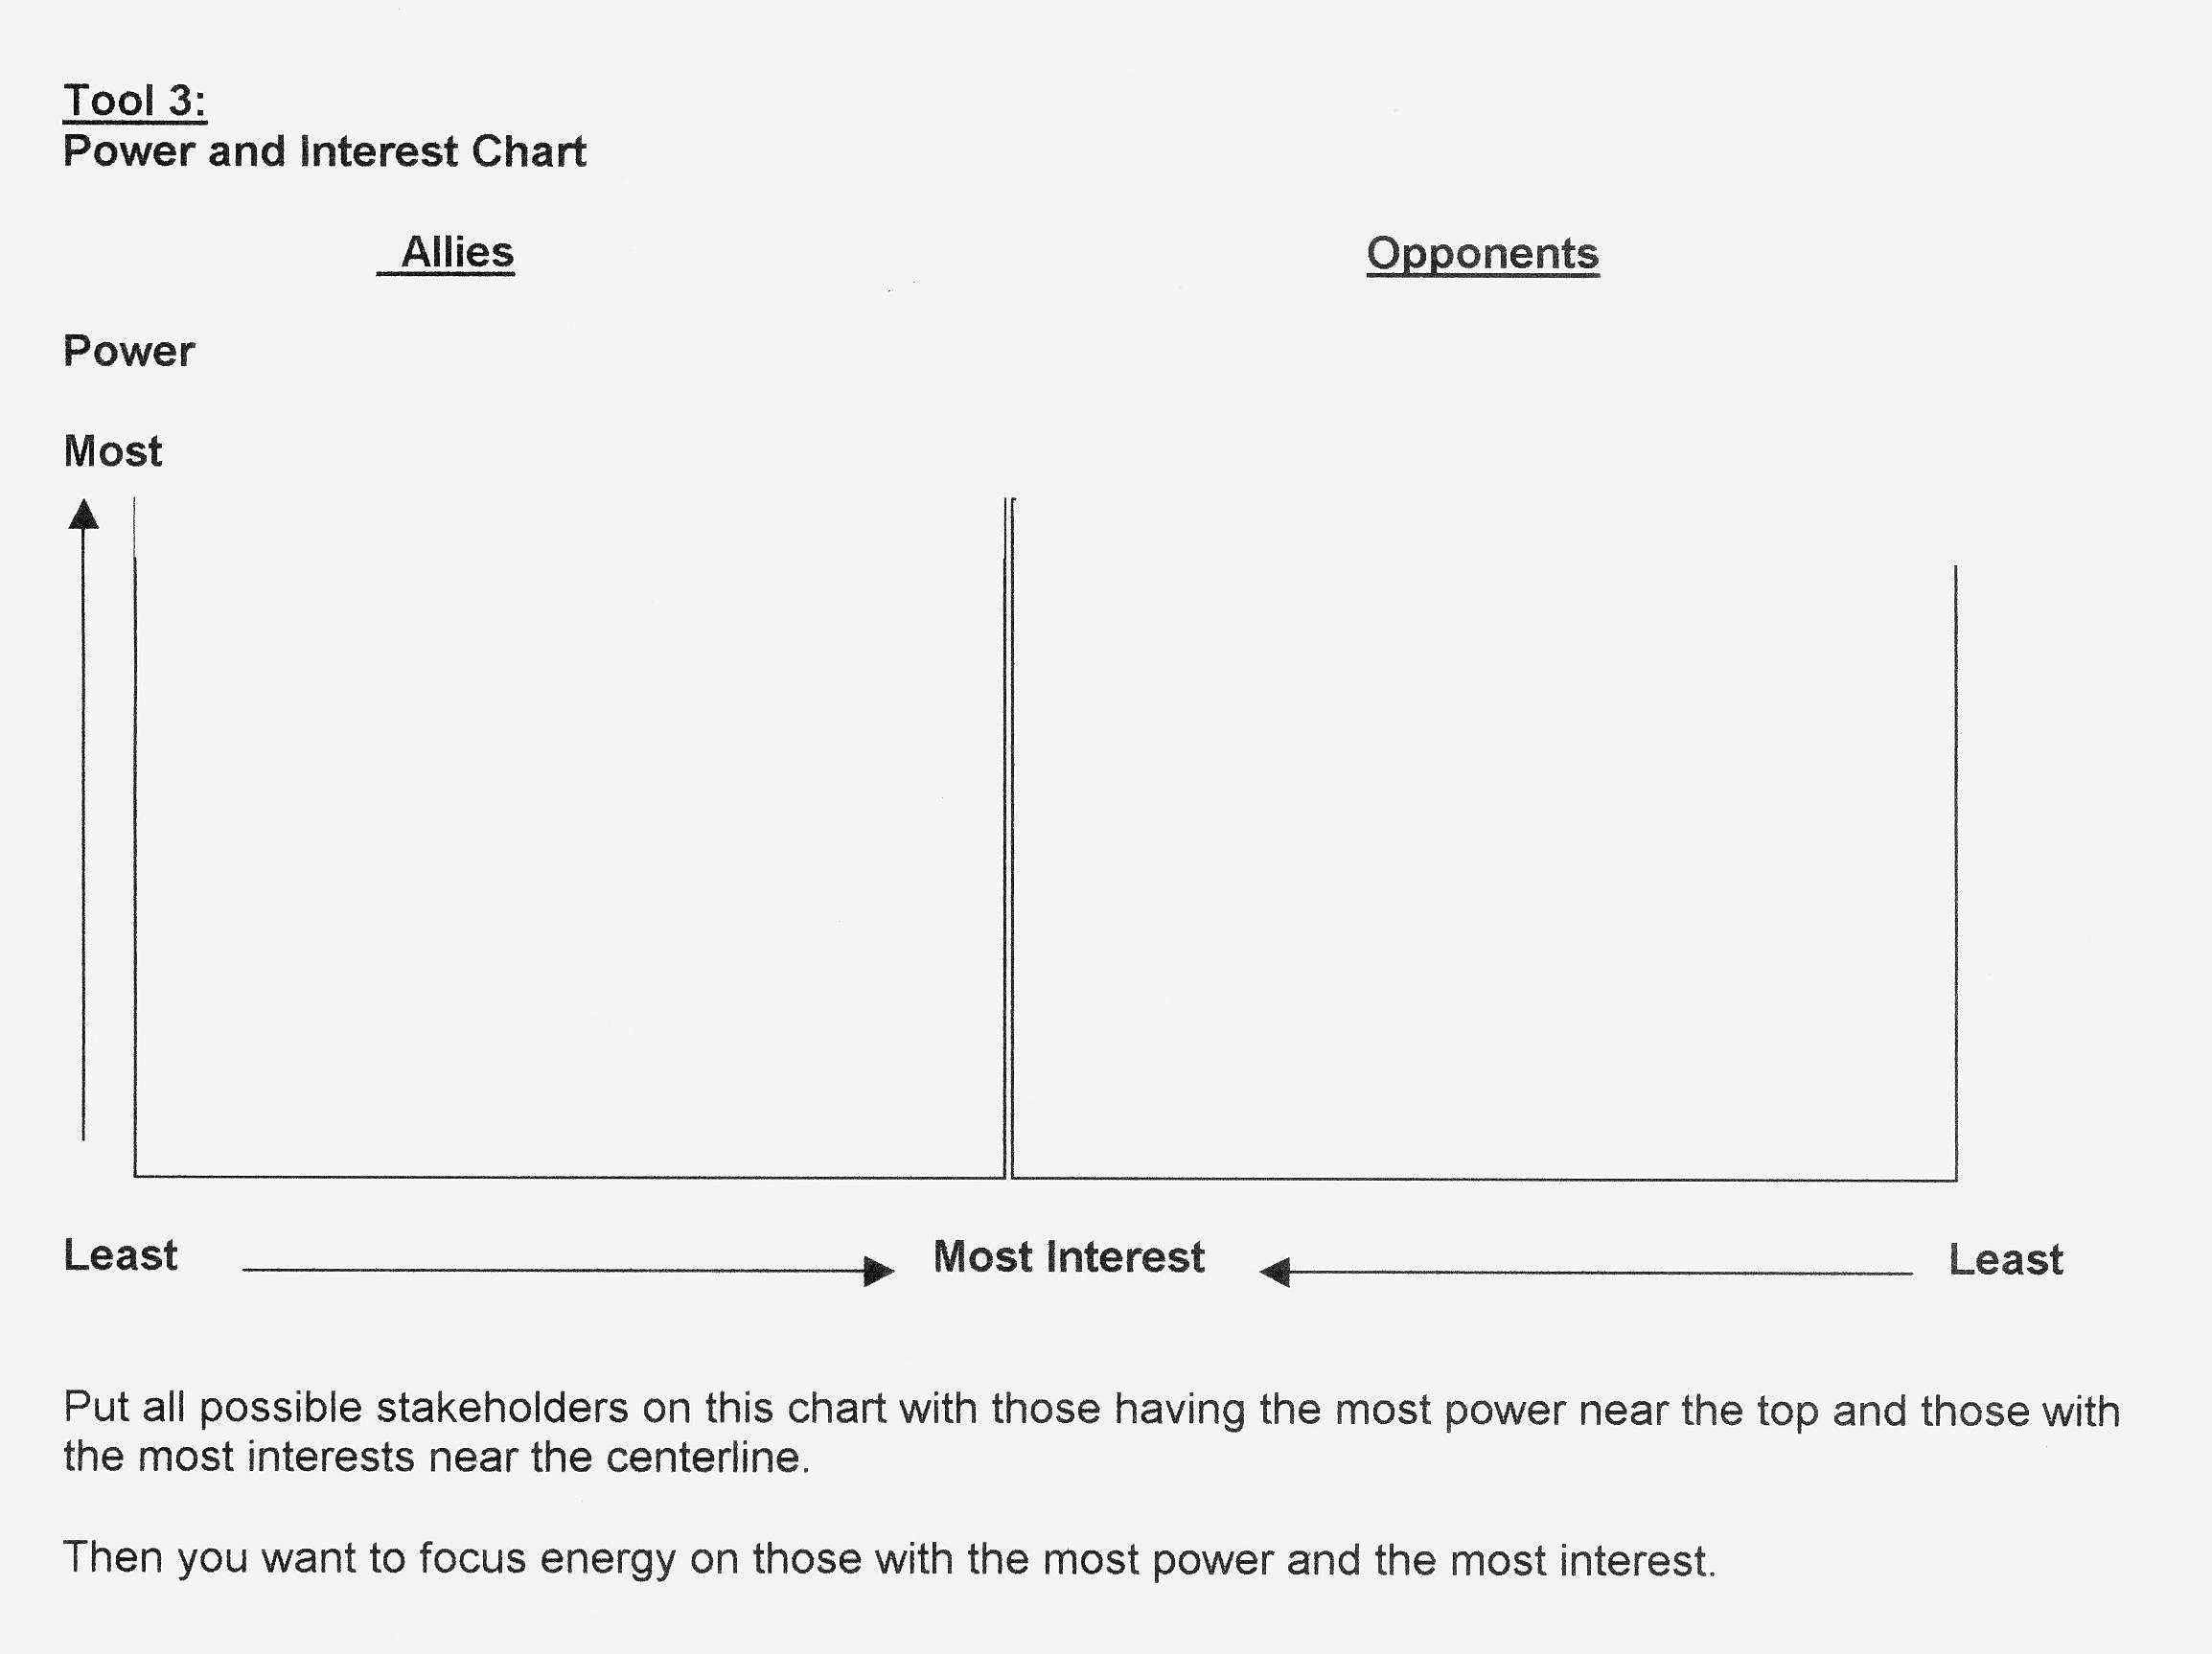 Tool 3 Power and Interest Chart